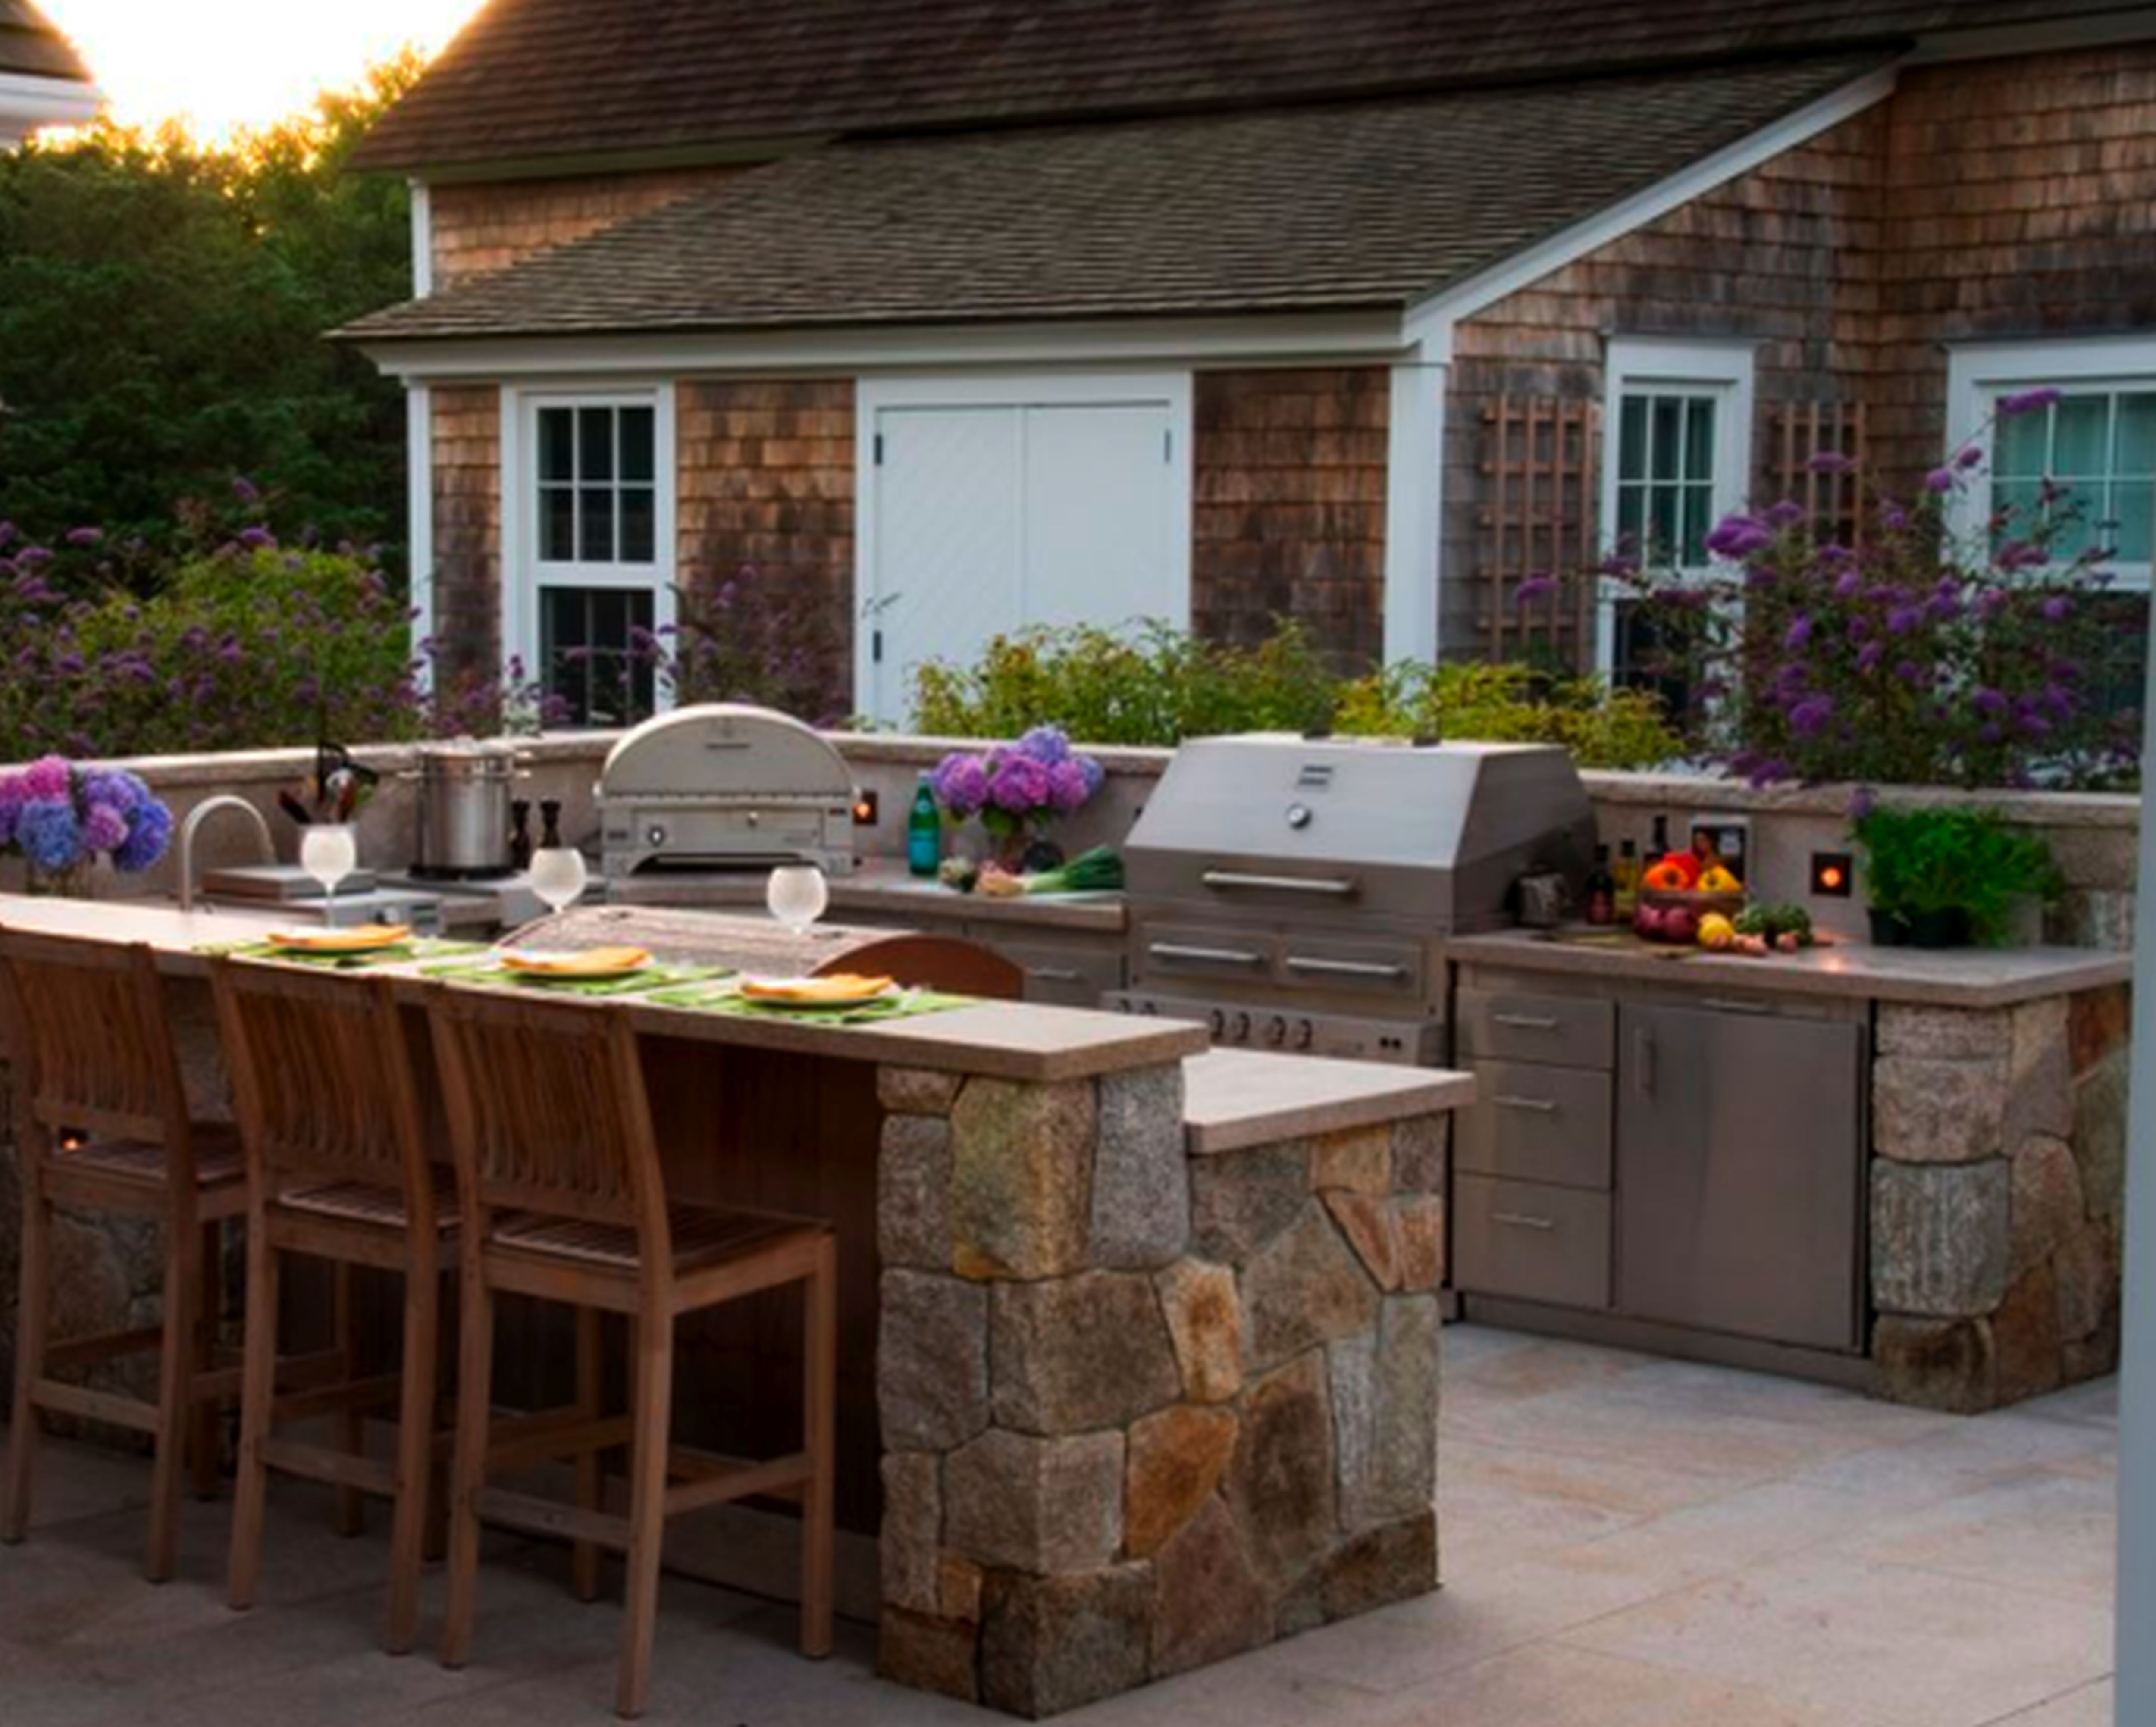 best images about incredible outdoor kitchens on pinterest outdoor kitchens designs - Outdoor Kitchen Design Ideas